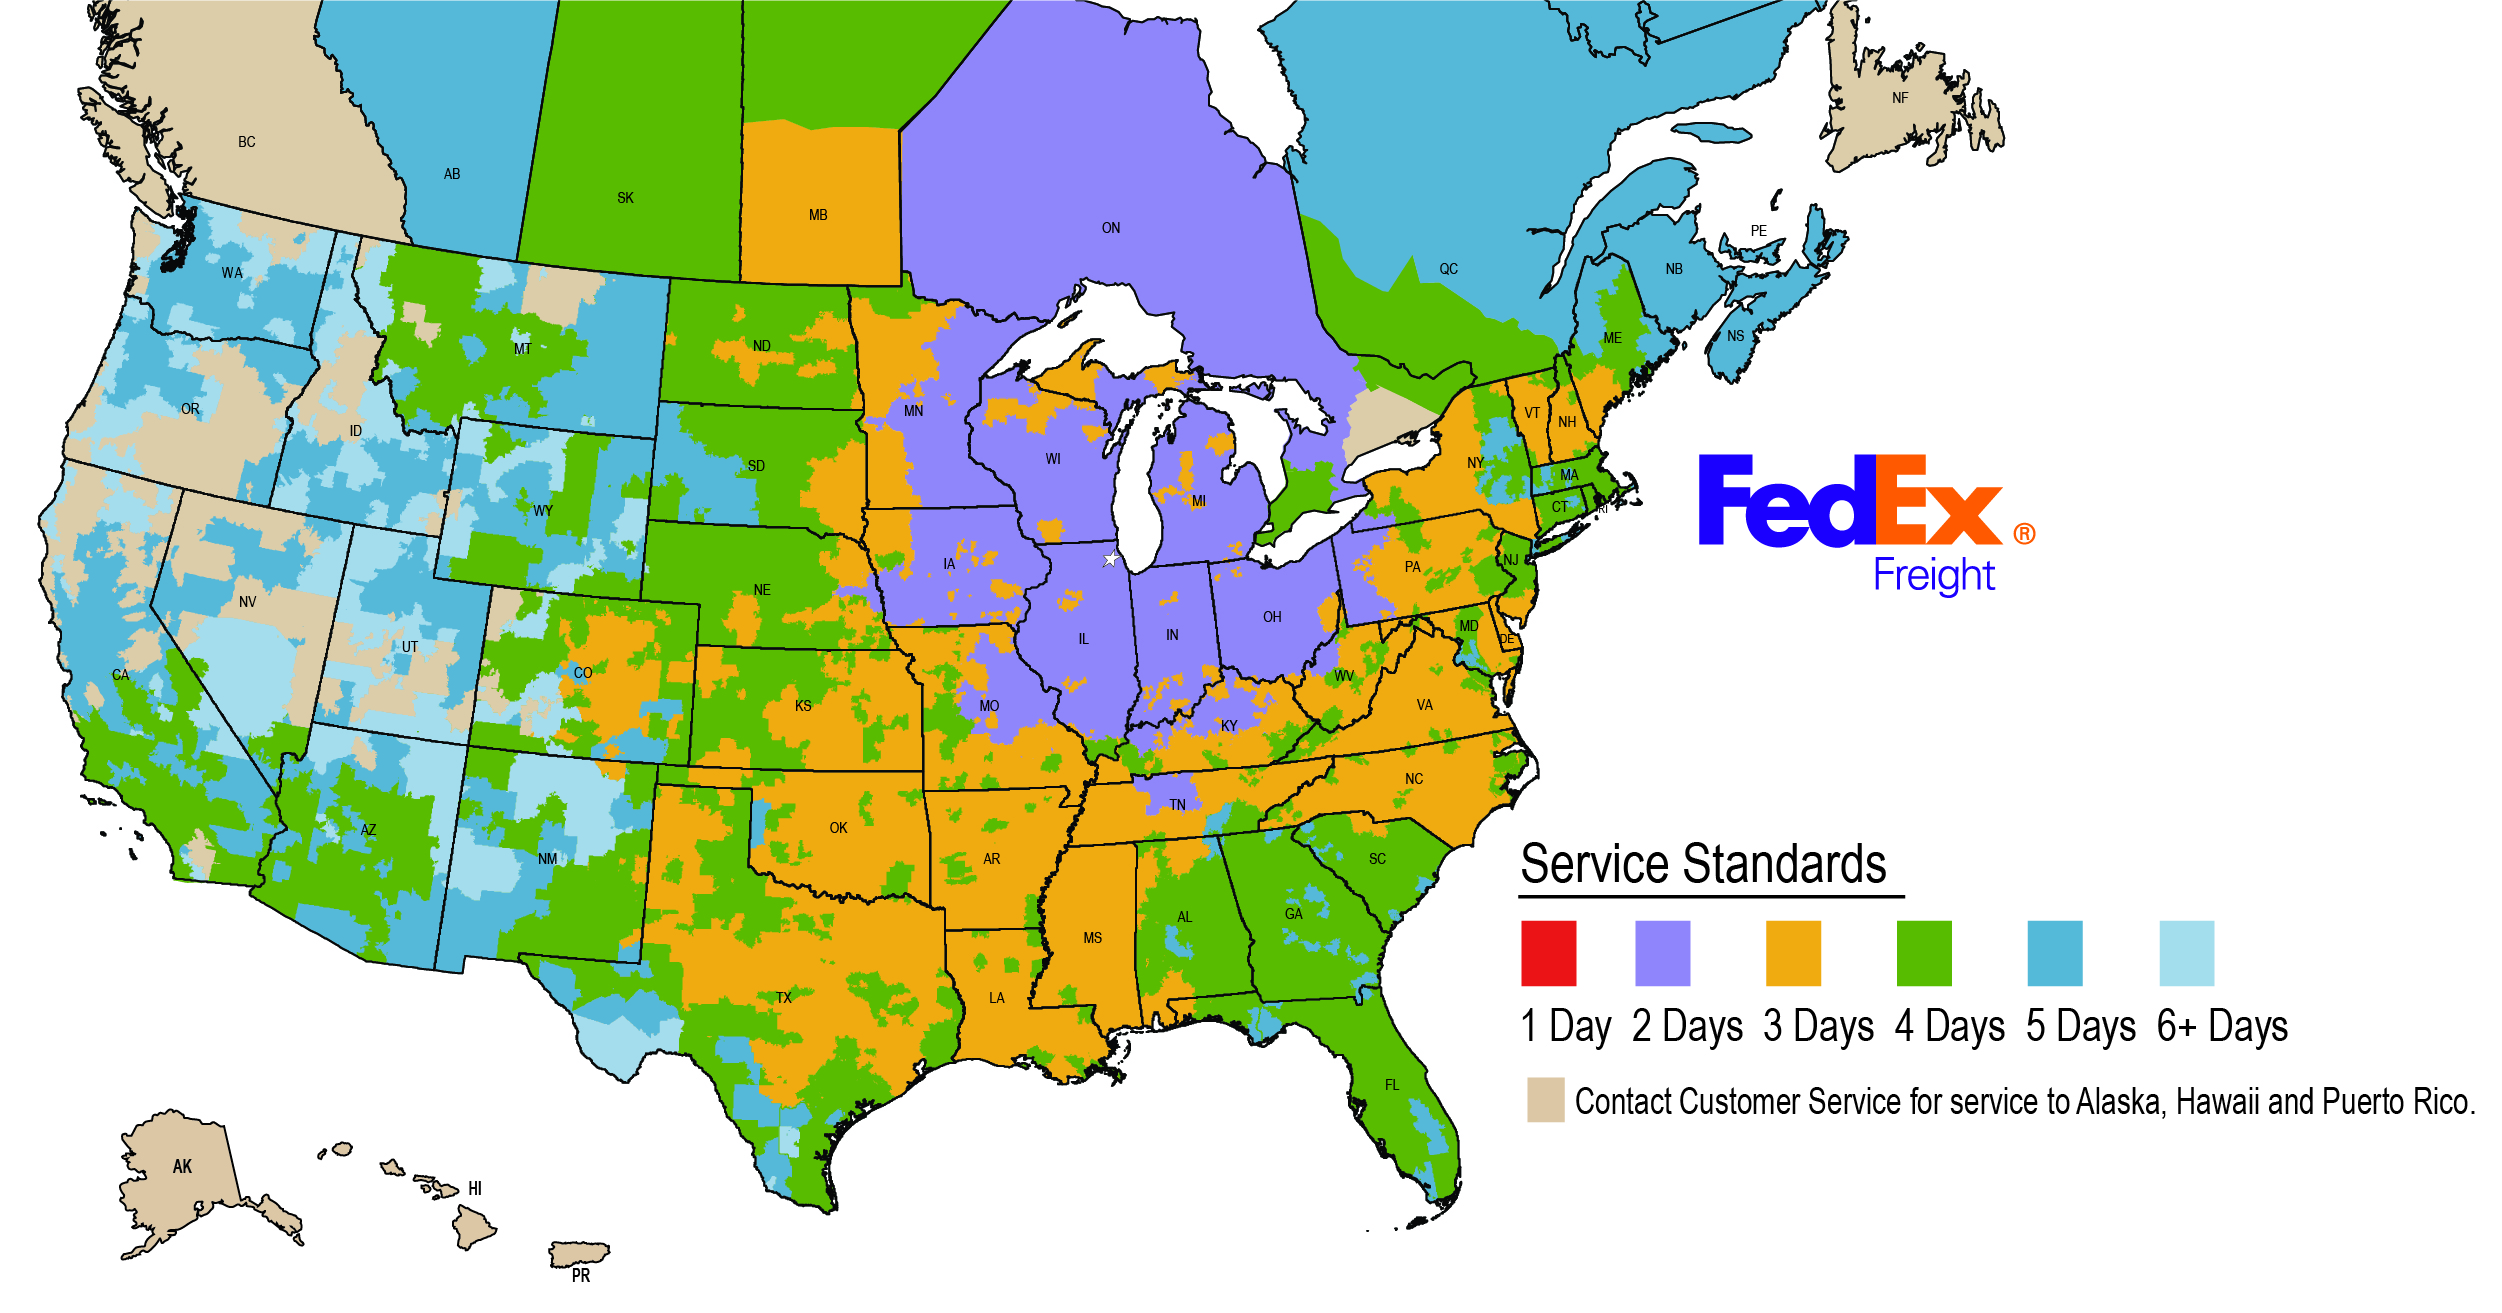 Fedex Map Image